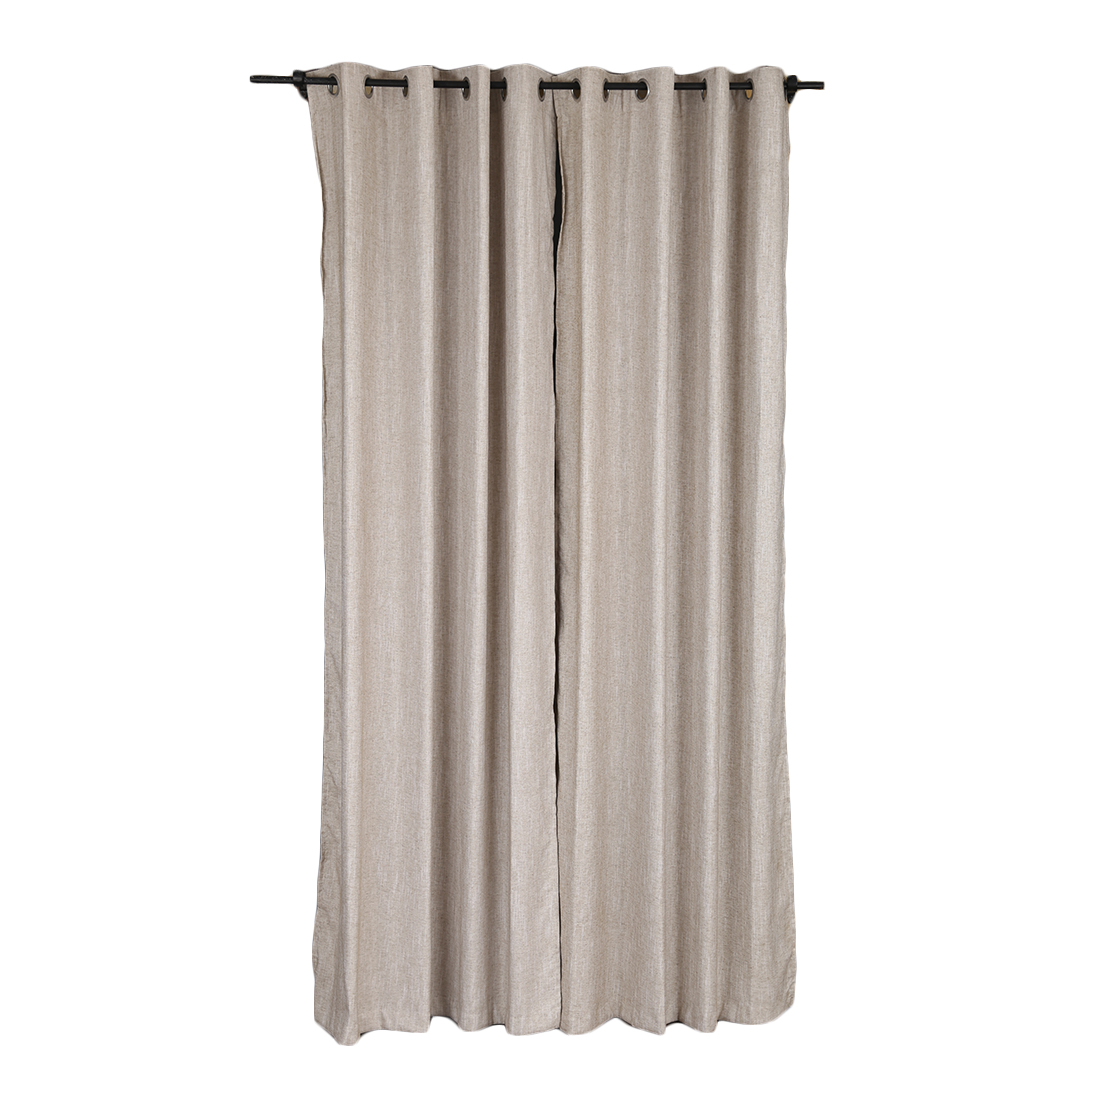 Amour Extra Large Curtain Beige Set of 2 Cotton Polyester Door Curtains in Beige Colour by Living Essence